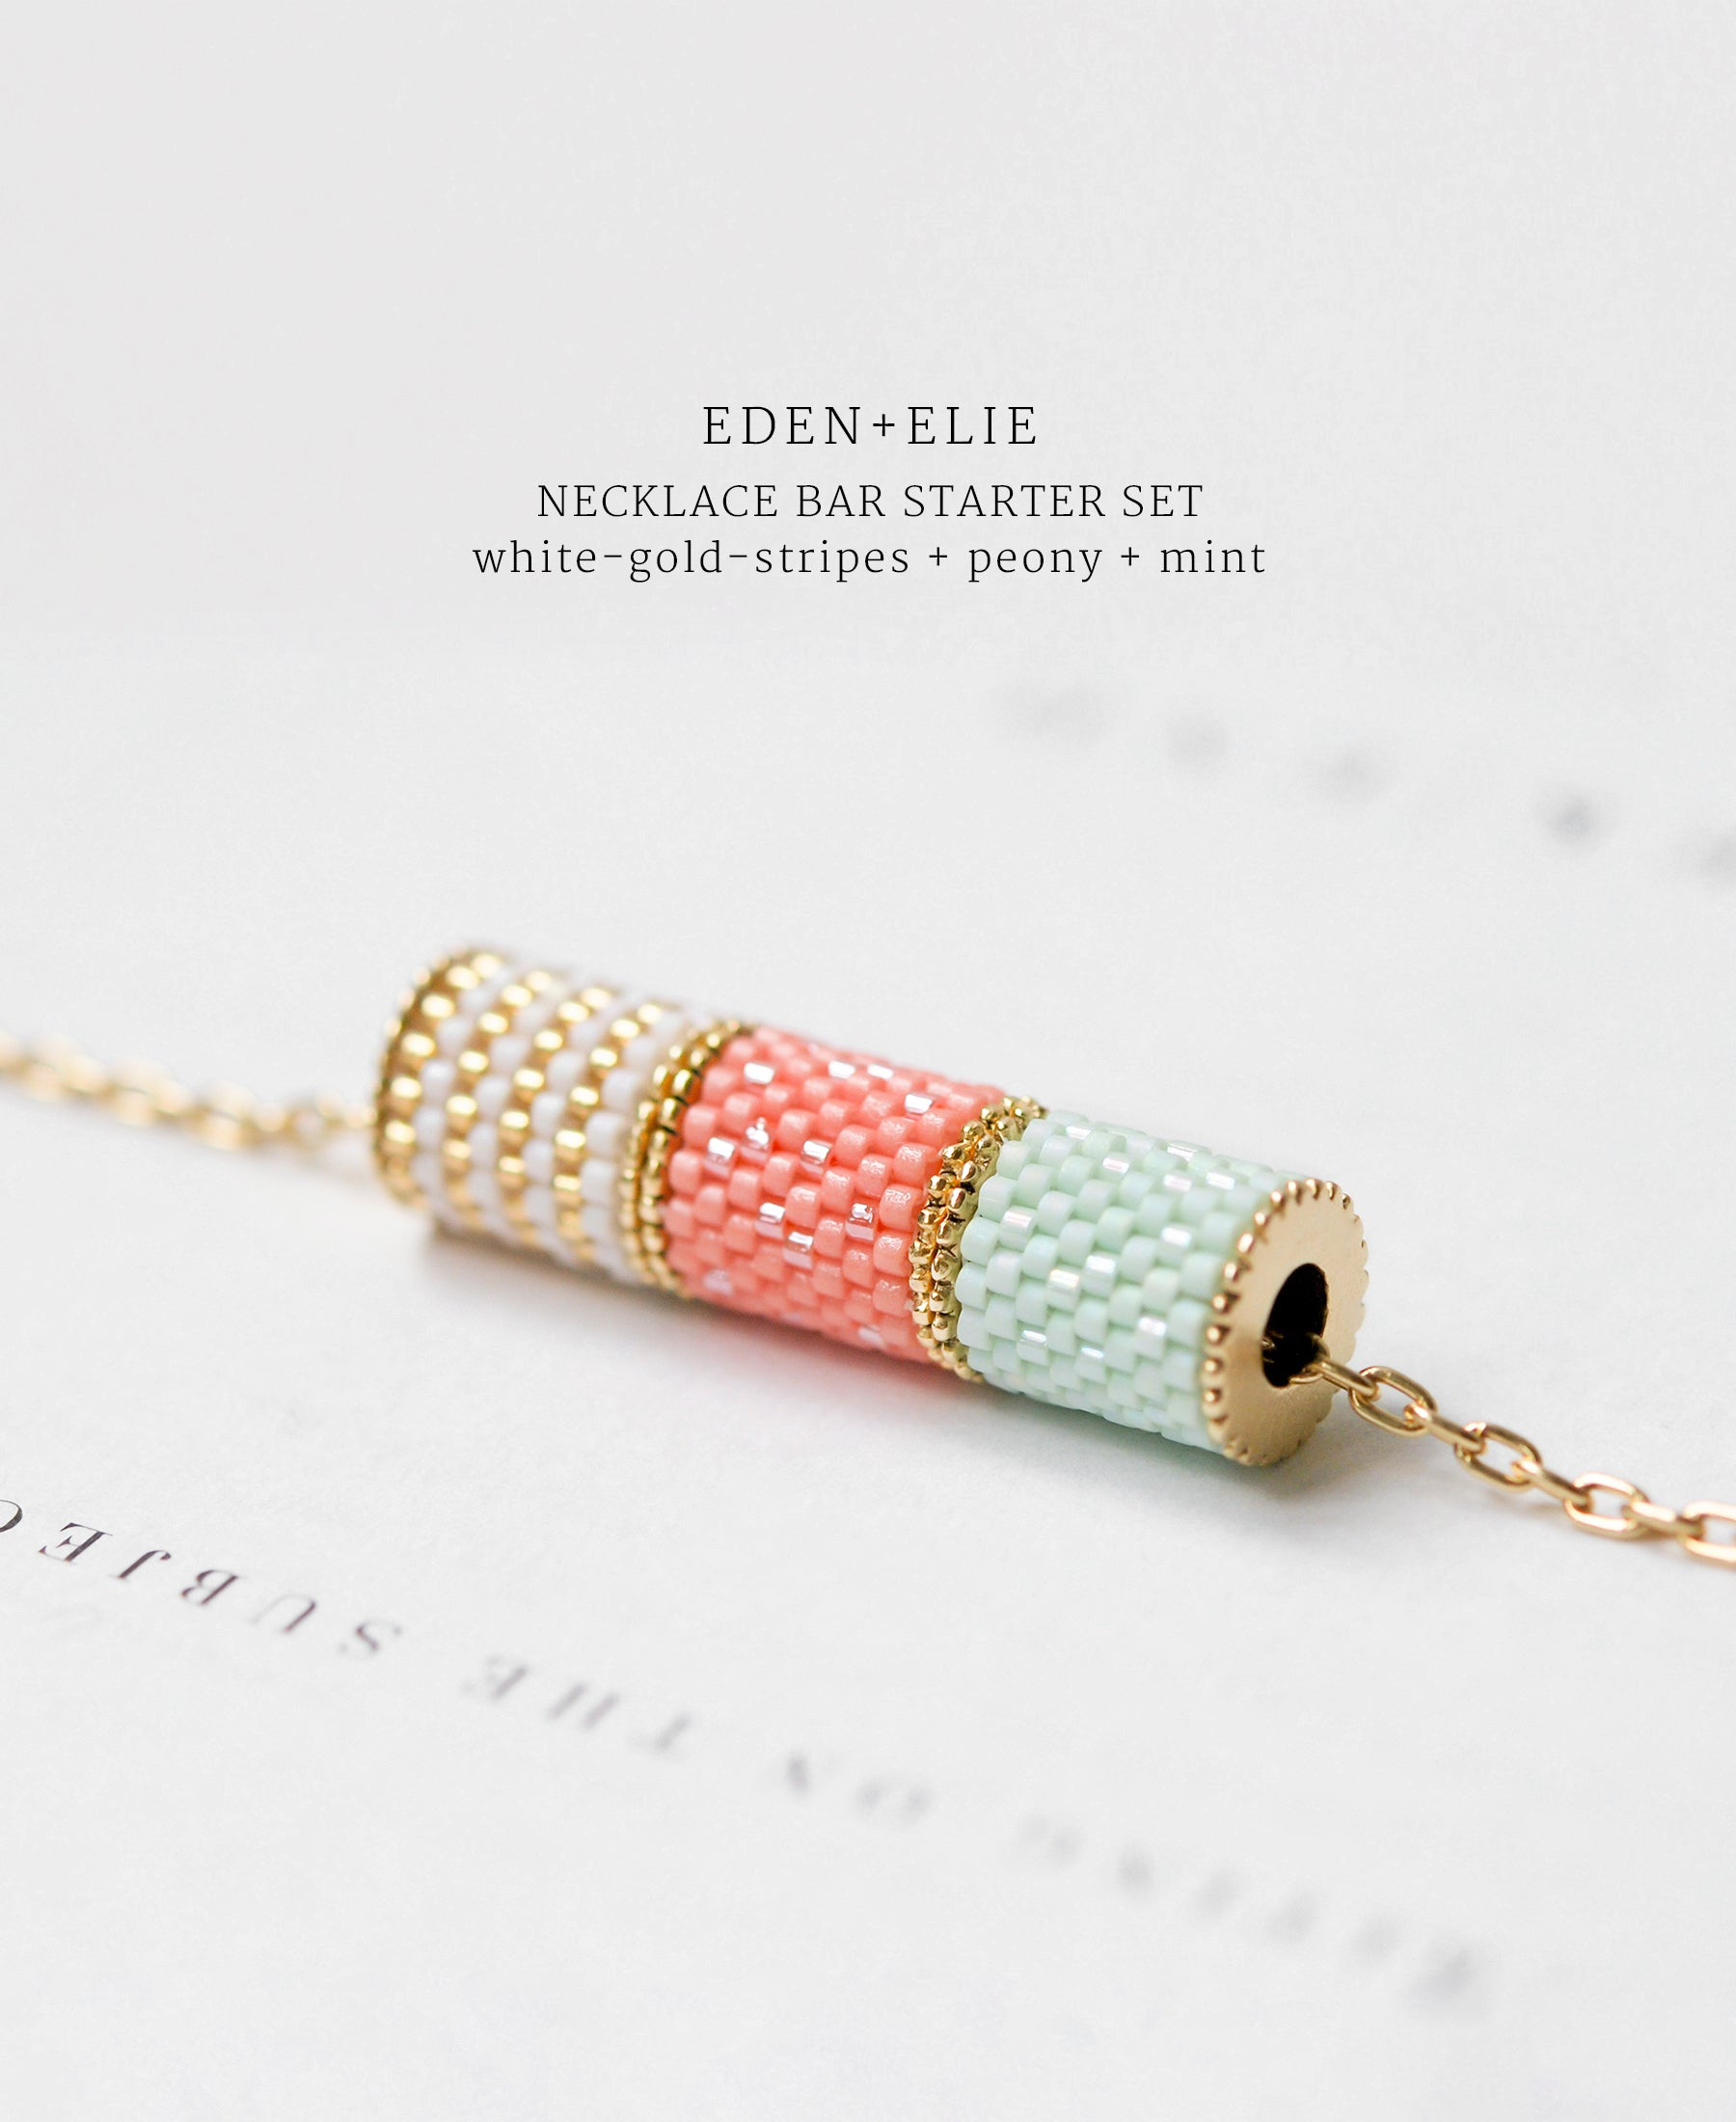 EDEN + ELIE Necklace Bar 3 bead starter set - mint + peony + white gold striped